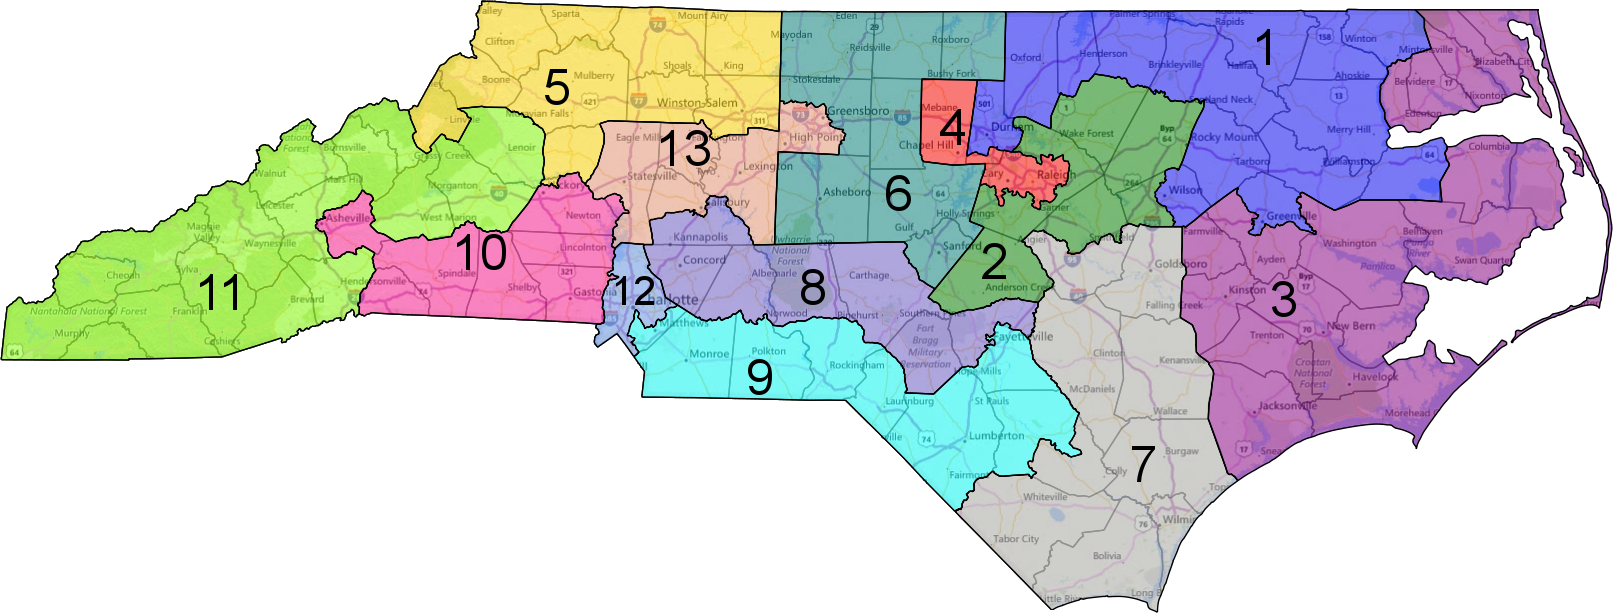 no, maryland is not the most gerrymandered state. there is more to